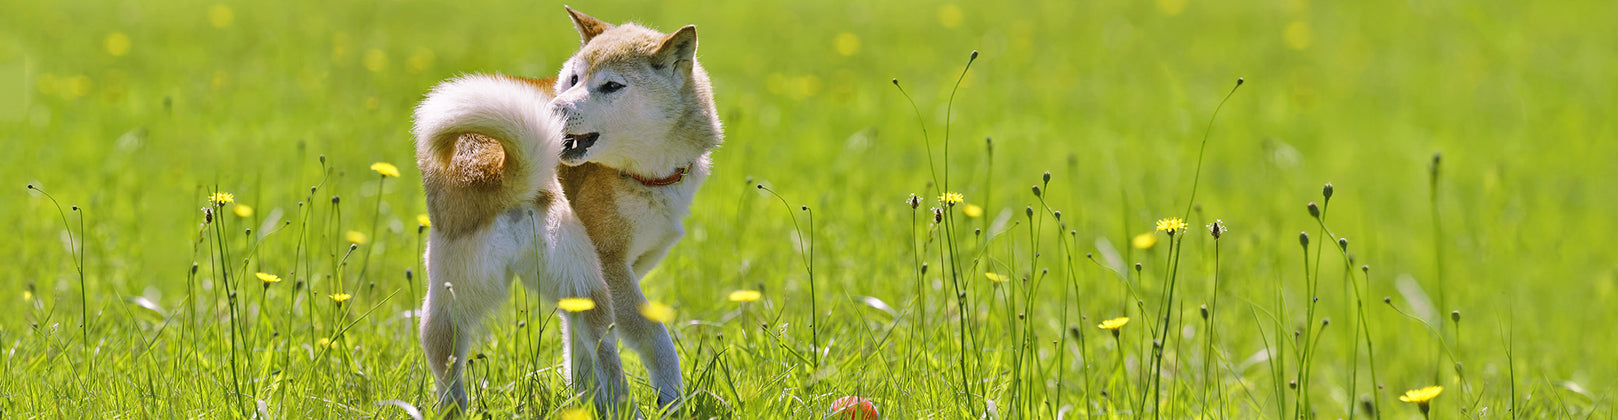 Why Do Dogs Chase Their Tails?